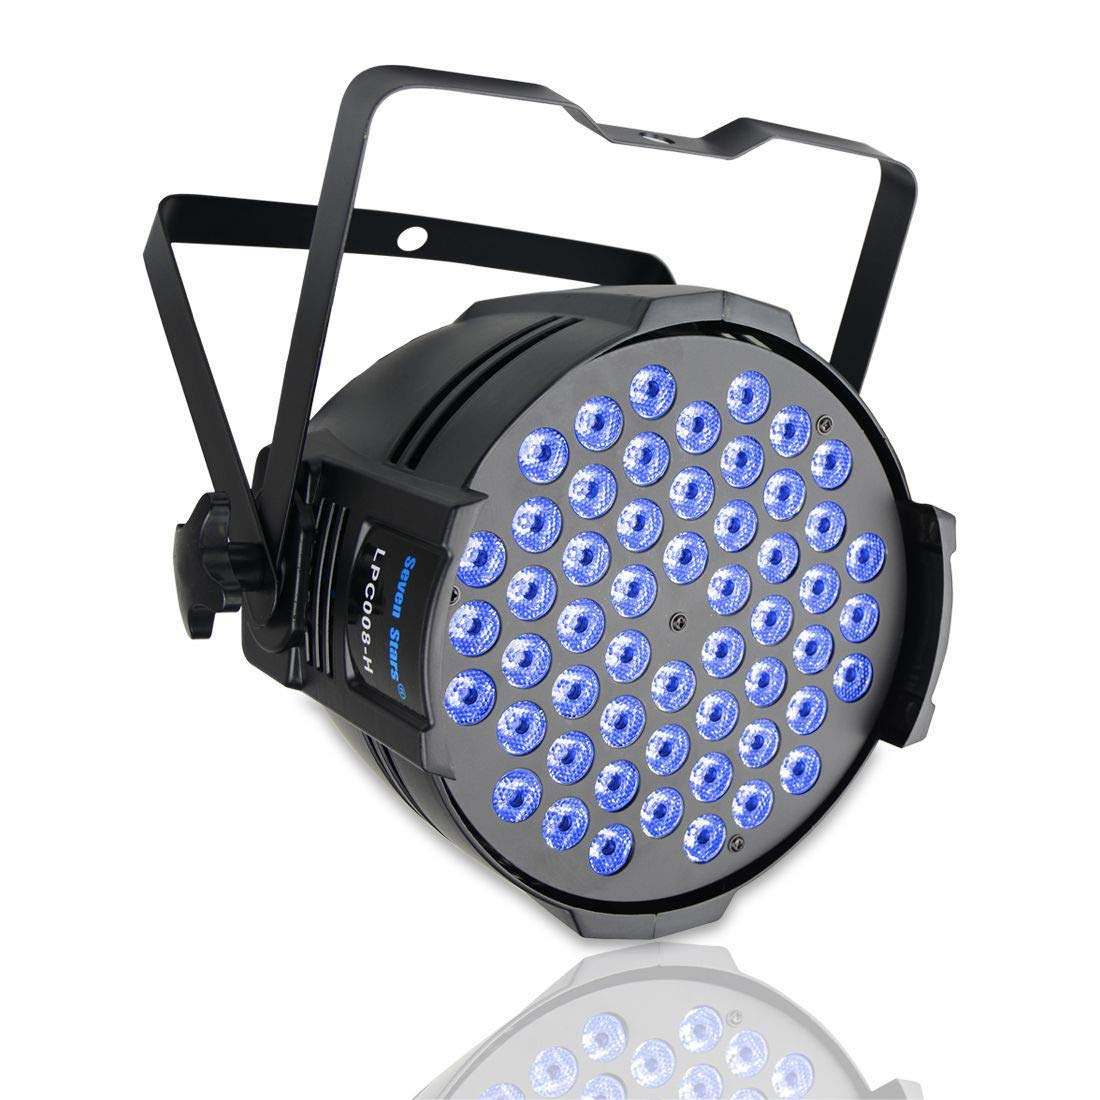 DJ PAR Light 180W RGBW LED Stage Lights 4/8 Channel DMX 512 Stage Lighting Self-supporting for DJ Wedding Party Church Concert Dance Stage Music Events Seven Stars